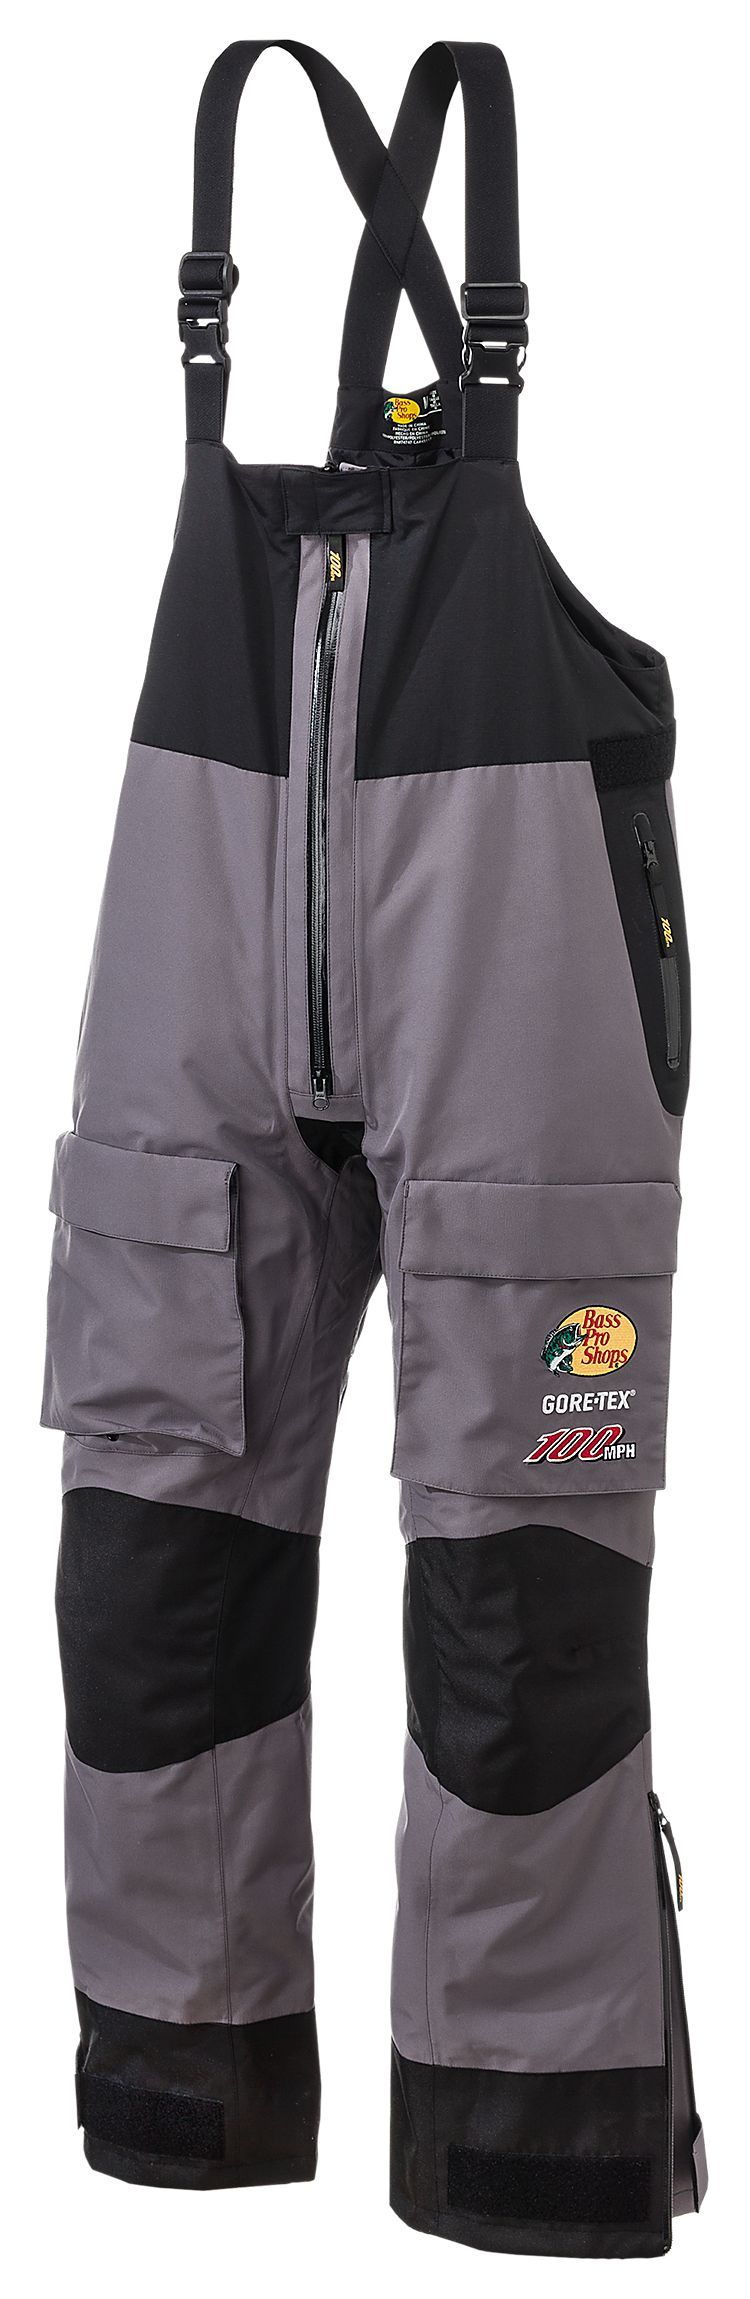 bass pro shops 100mph gore tex rain bibs for men bass